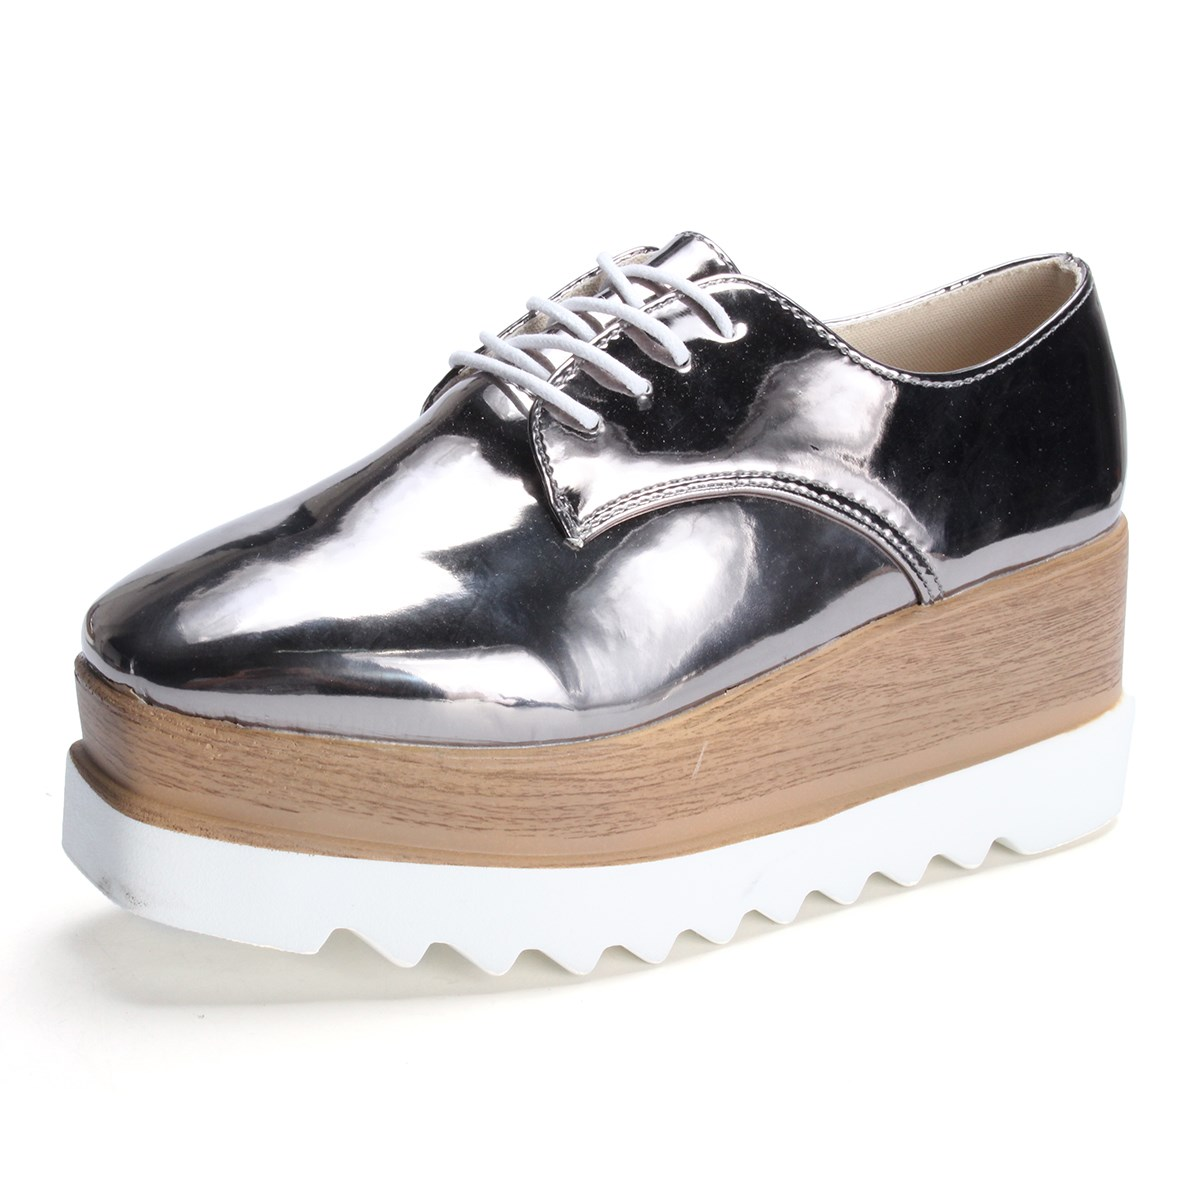 Flat Platform Shoes Silver With Stars